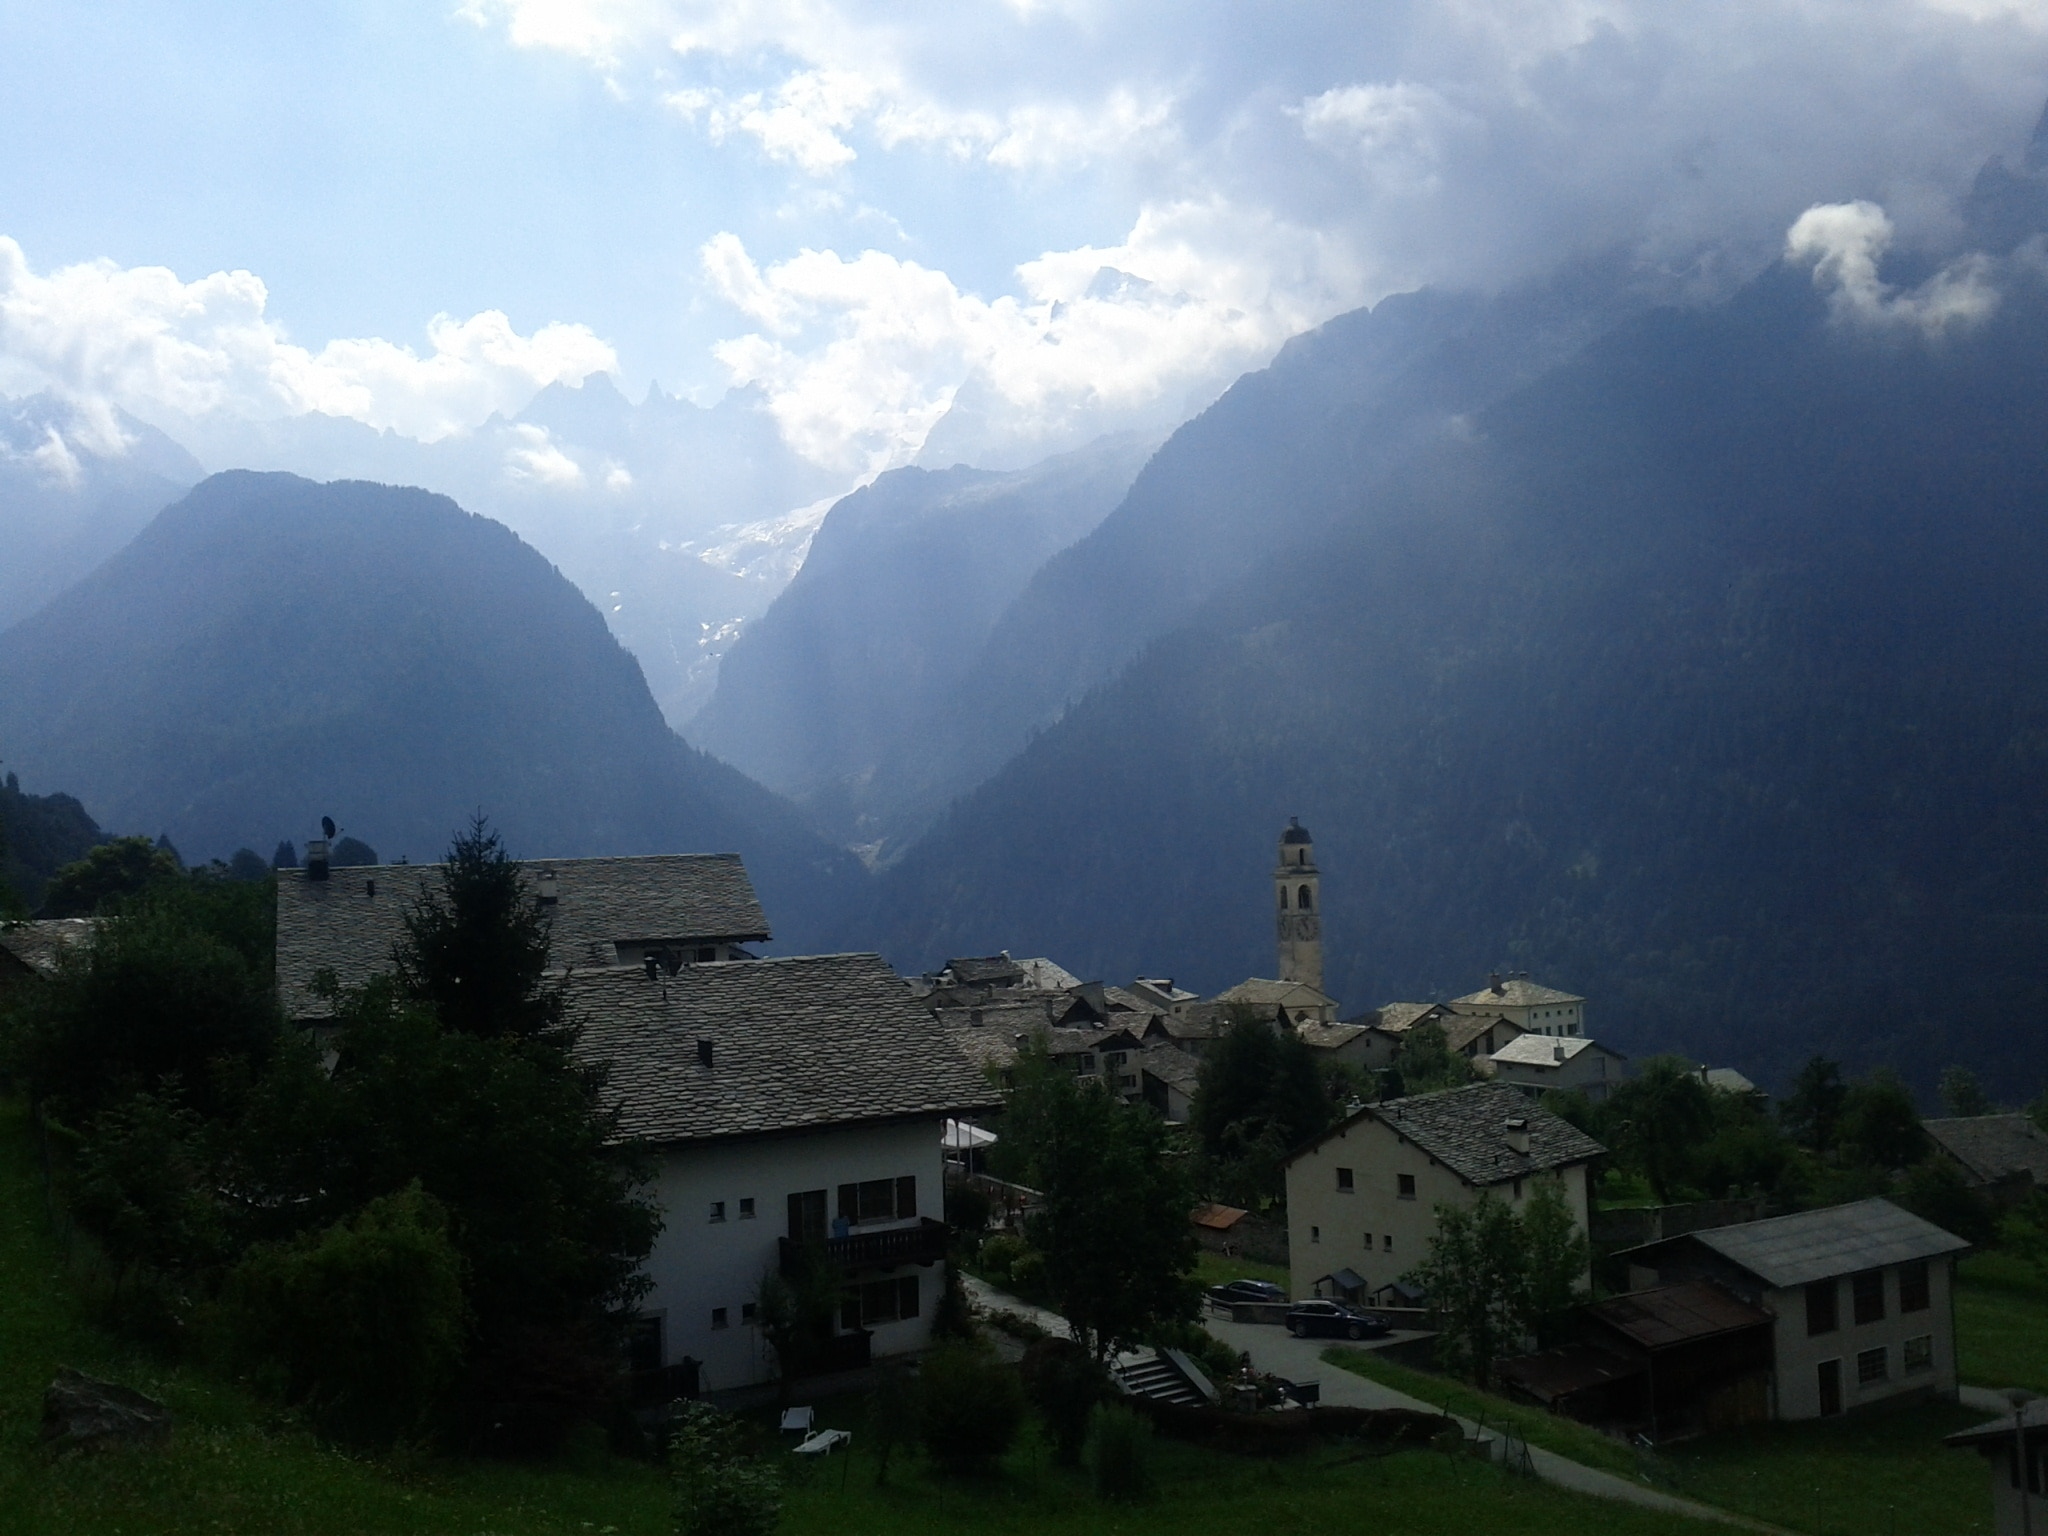 Soglio, on my way up and out of the valley. The Piz Badile is hidden by clouds, but you get a taste of the scale and the ragged granite terrain.